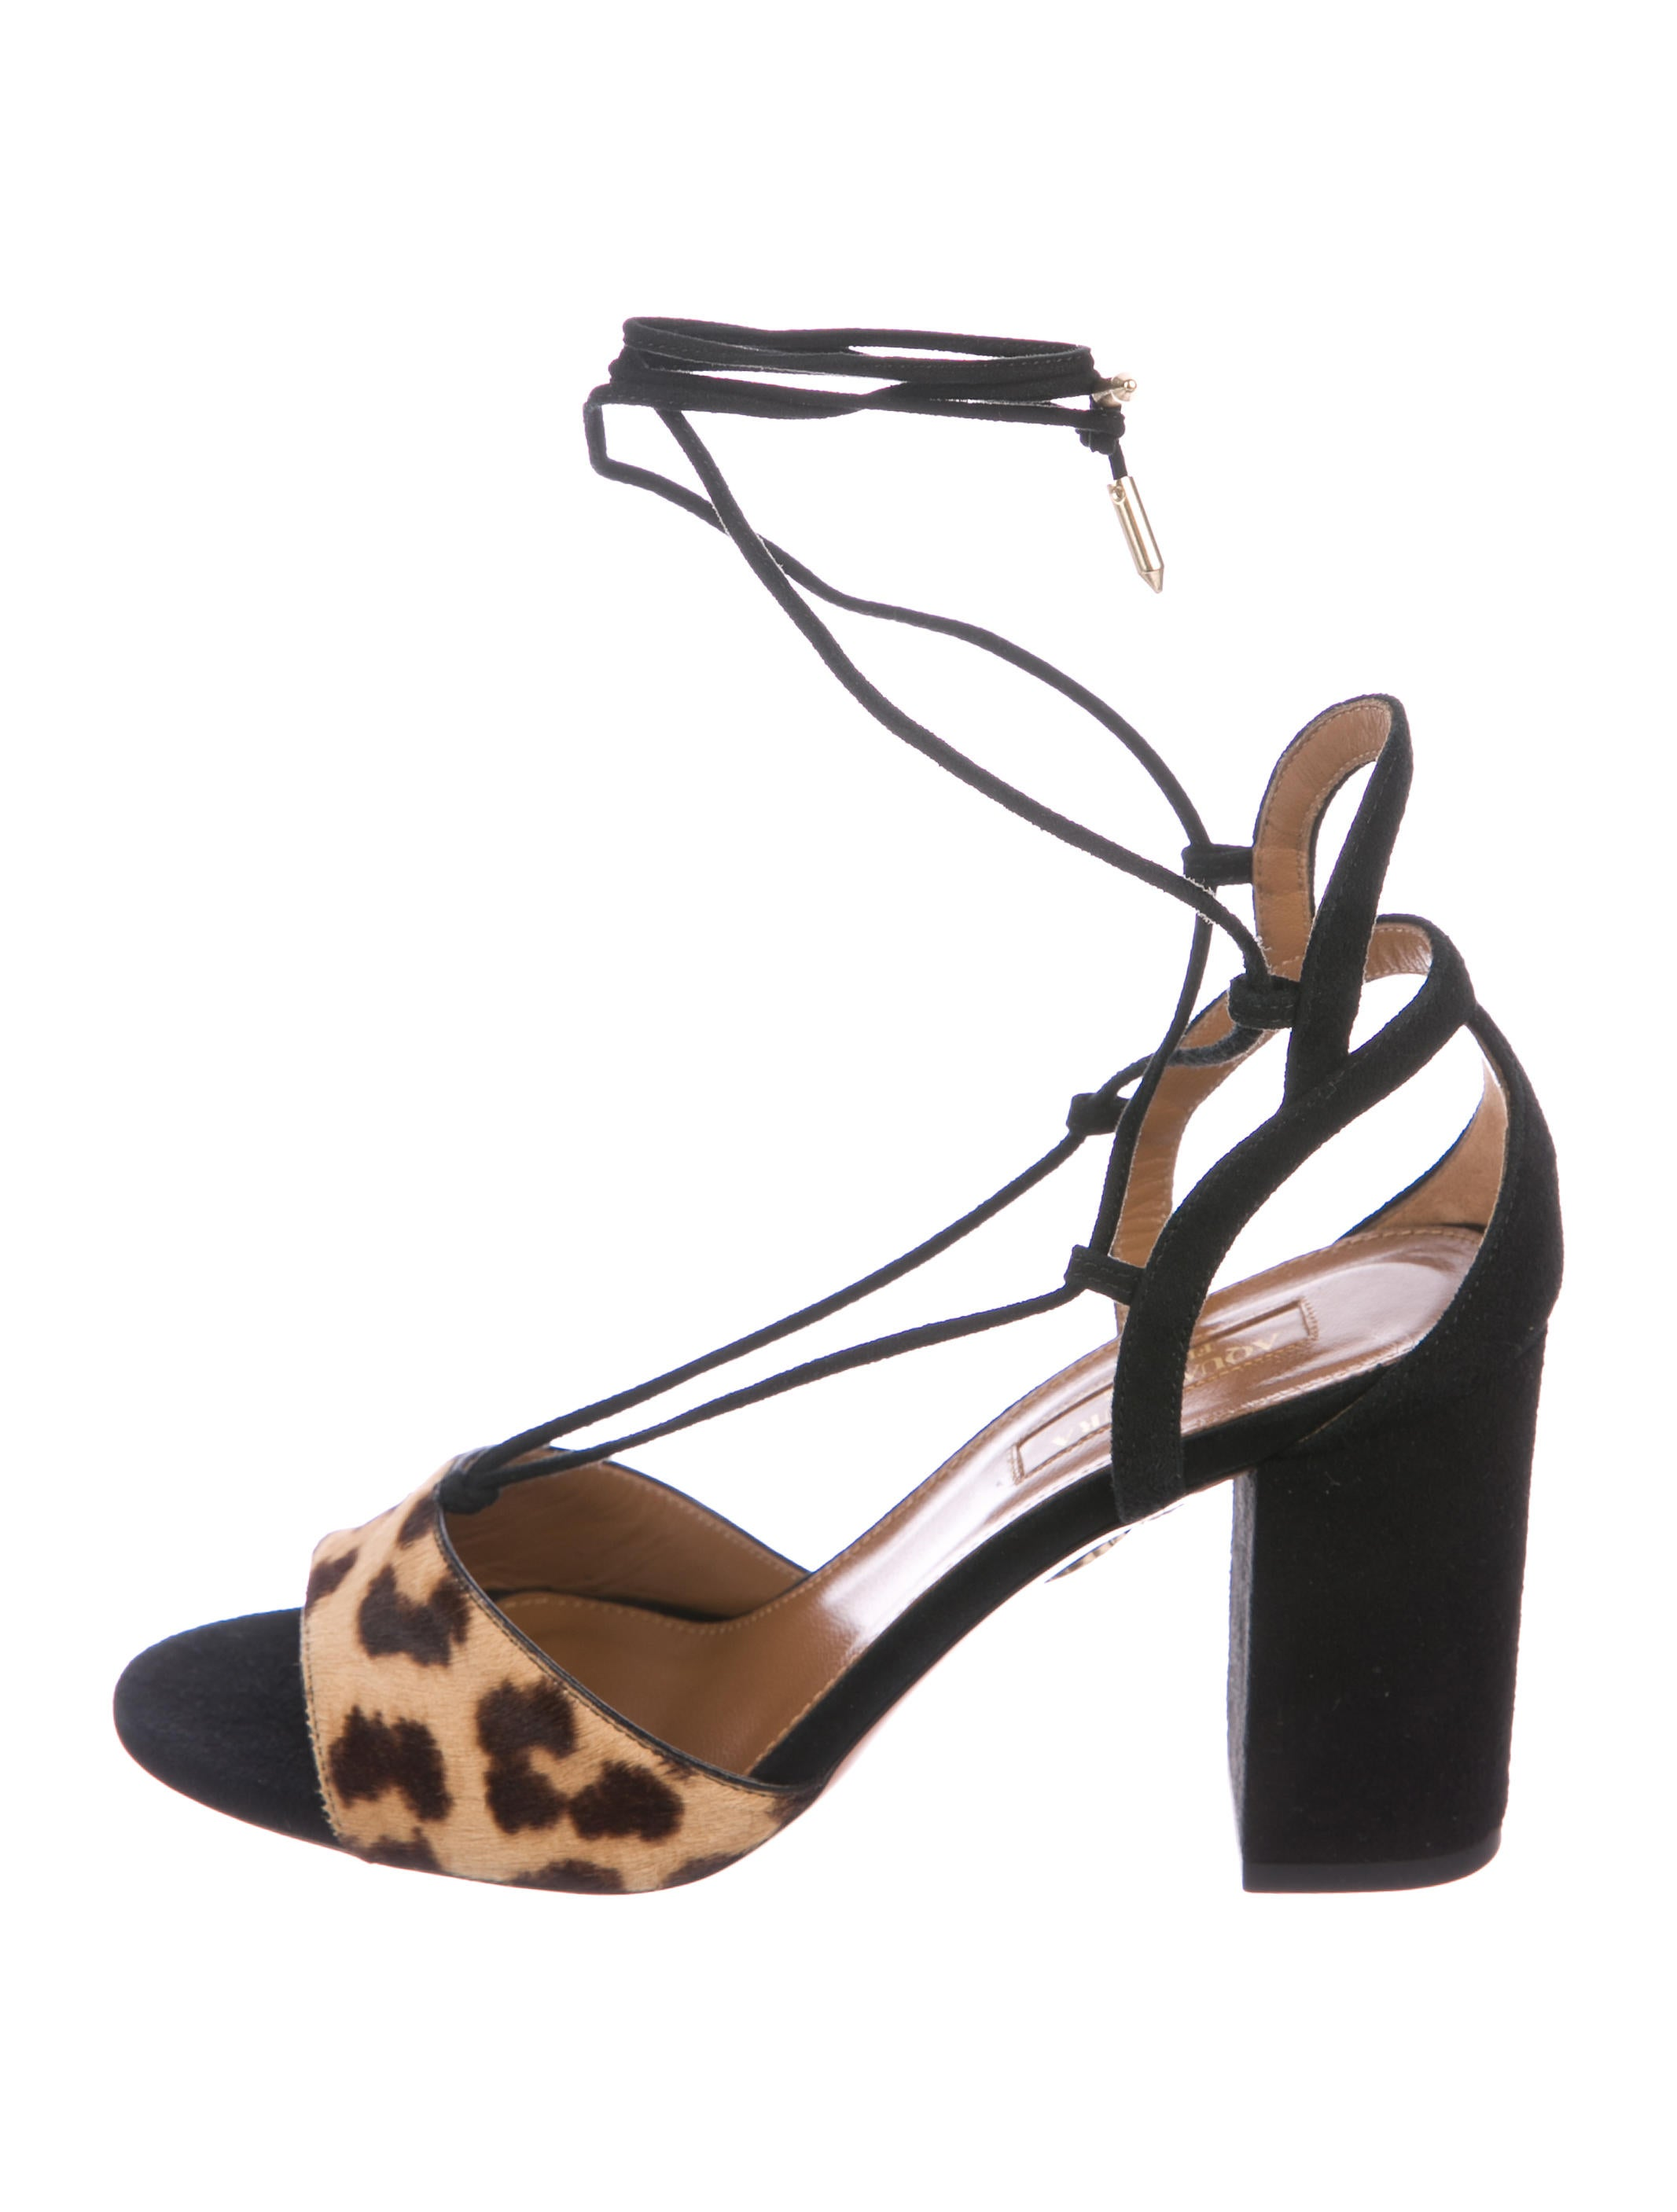 100% guaranteed sale online outlet locations Aquazzura Austin Lace-up Sandals w/ Tags release dates Xrm8Nnr